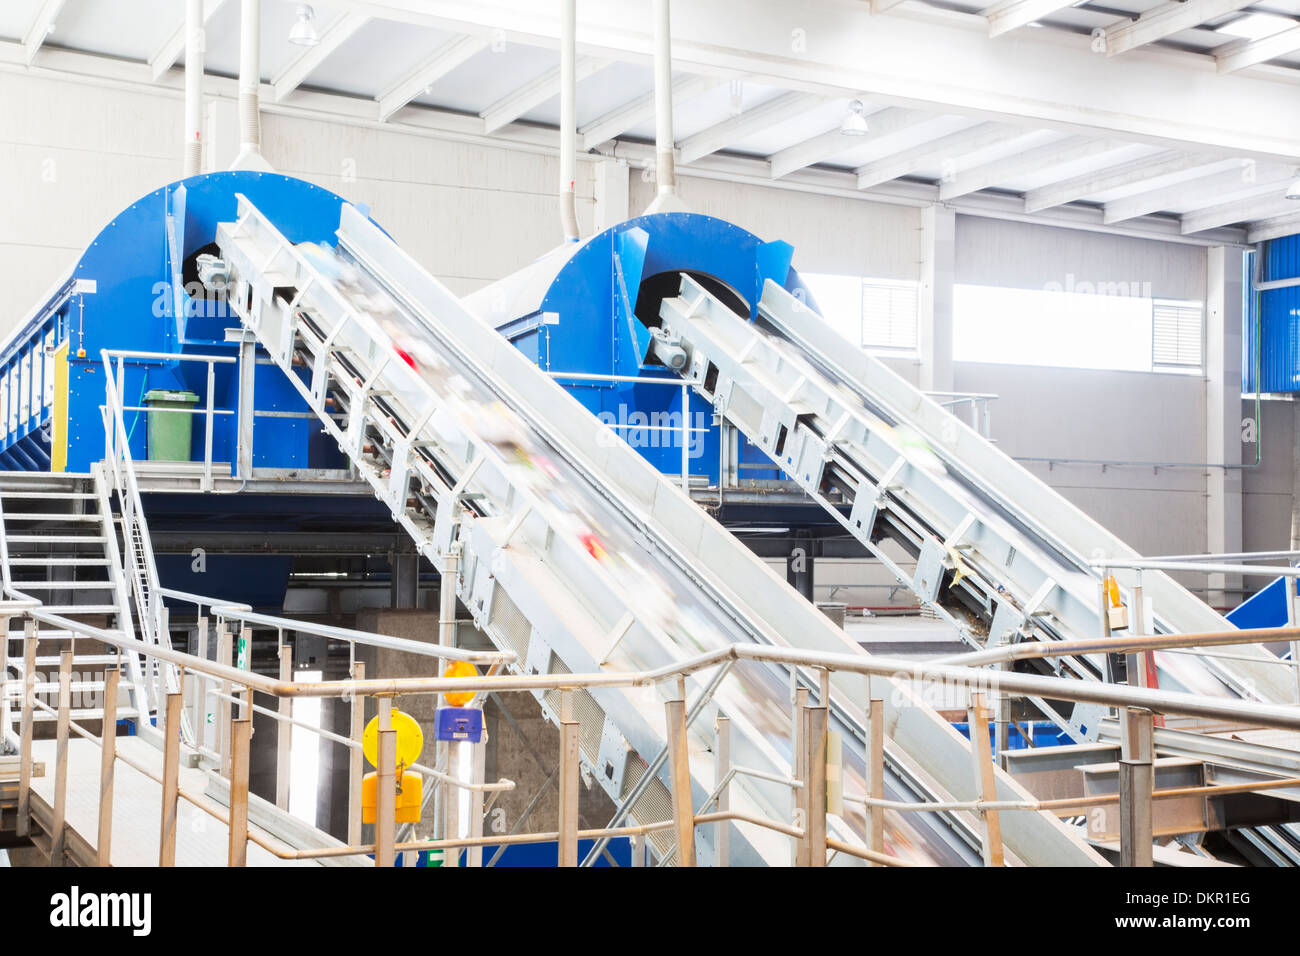 Conveyor belts in recycling center - Stock Image